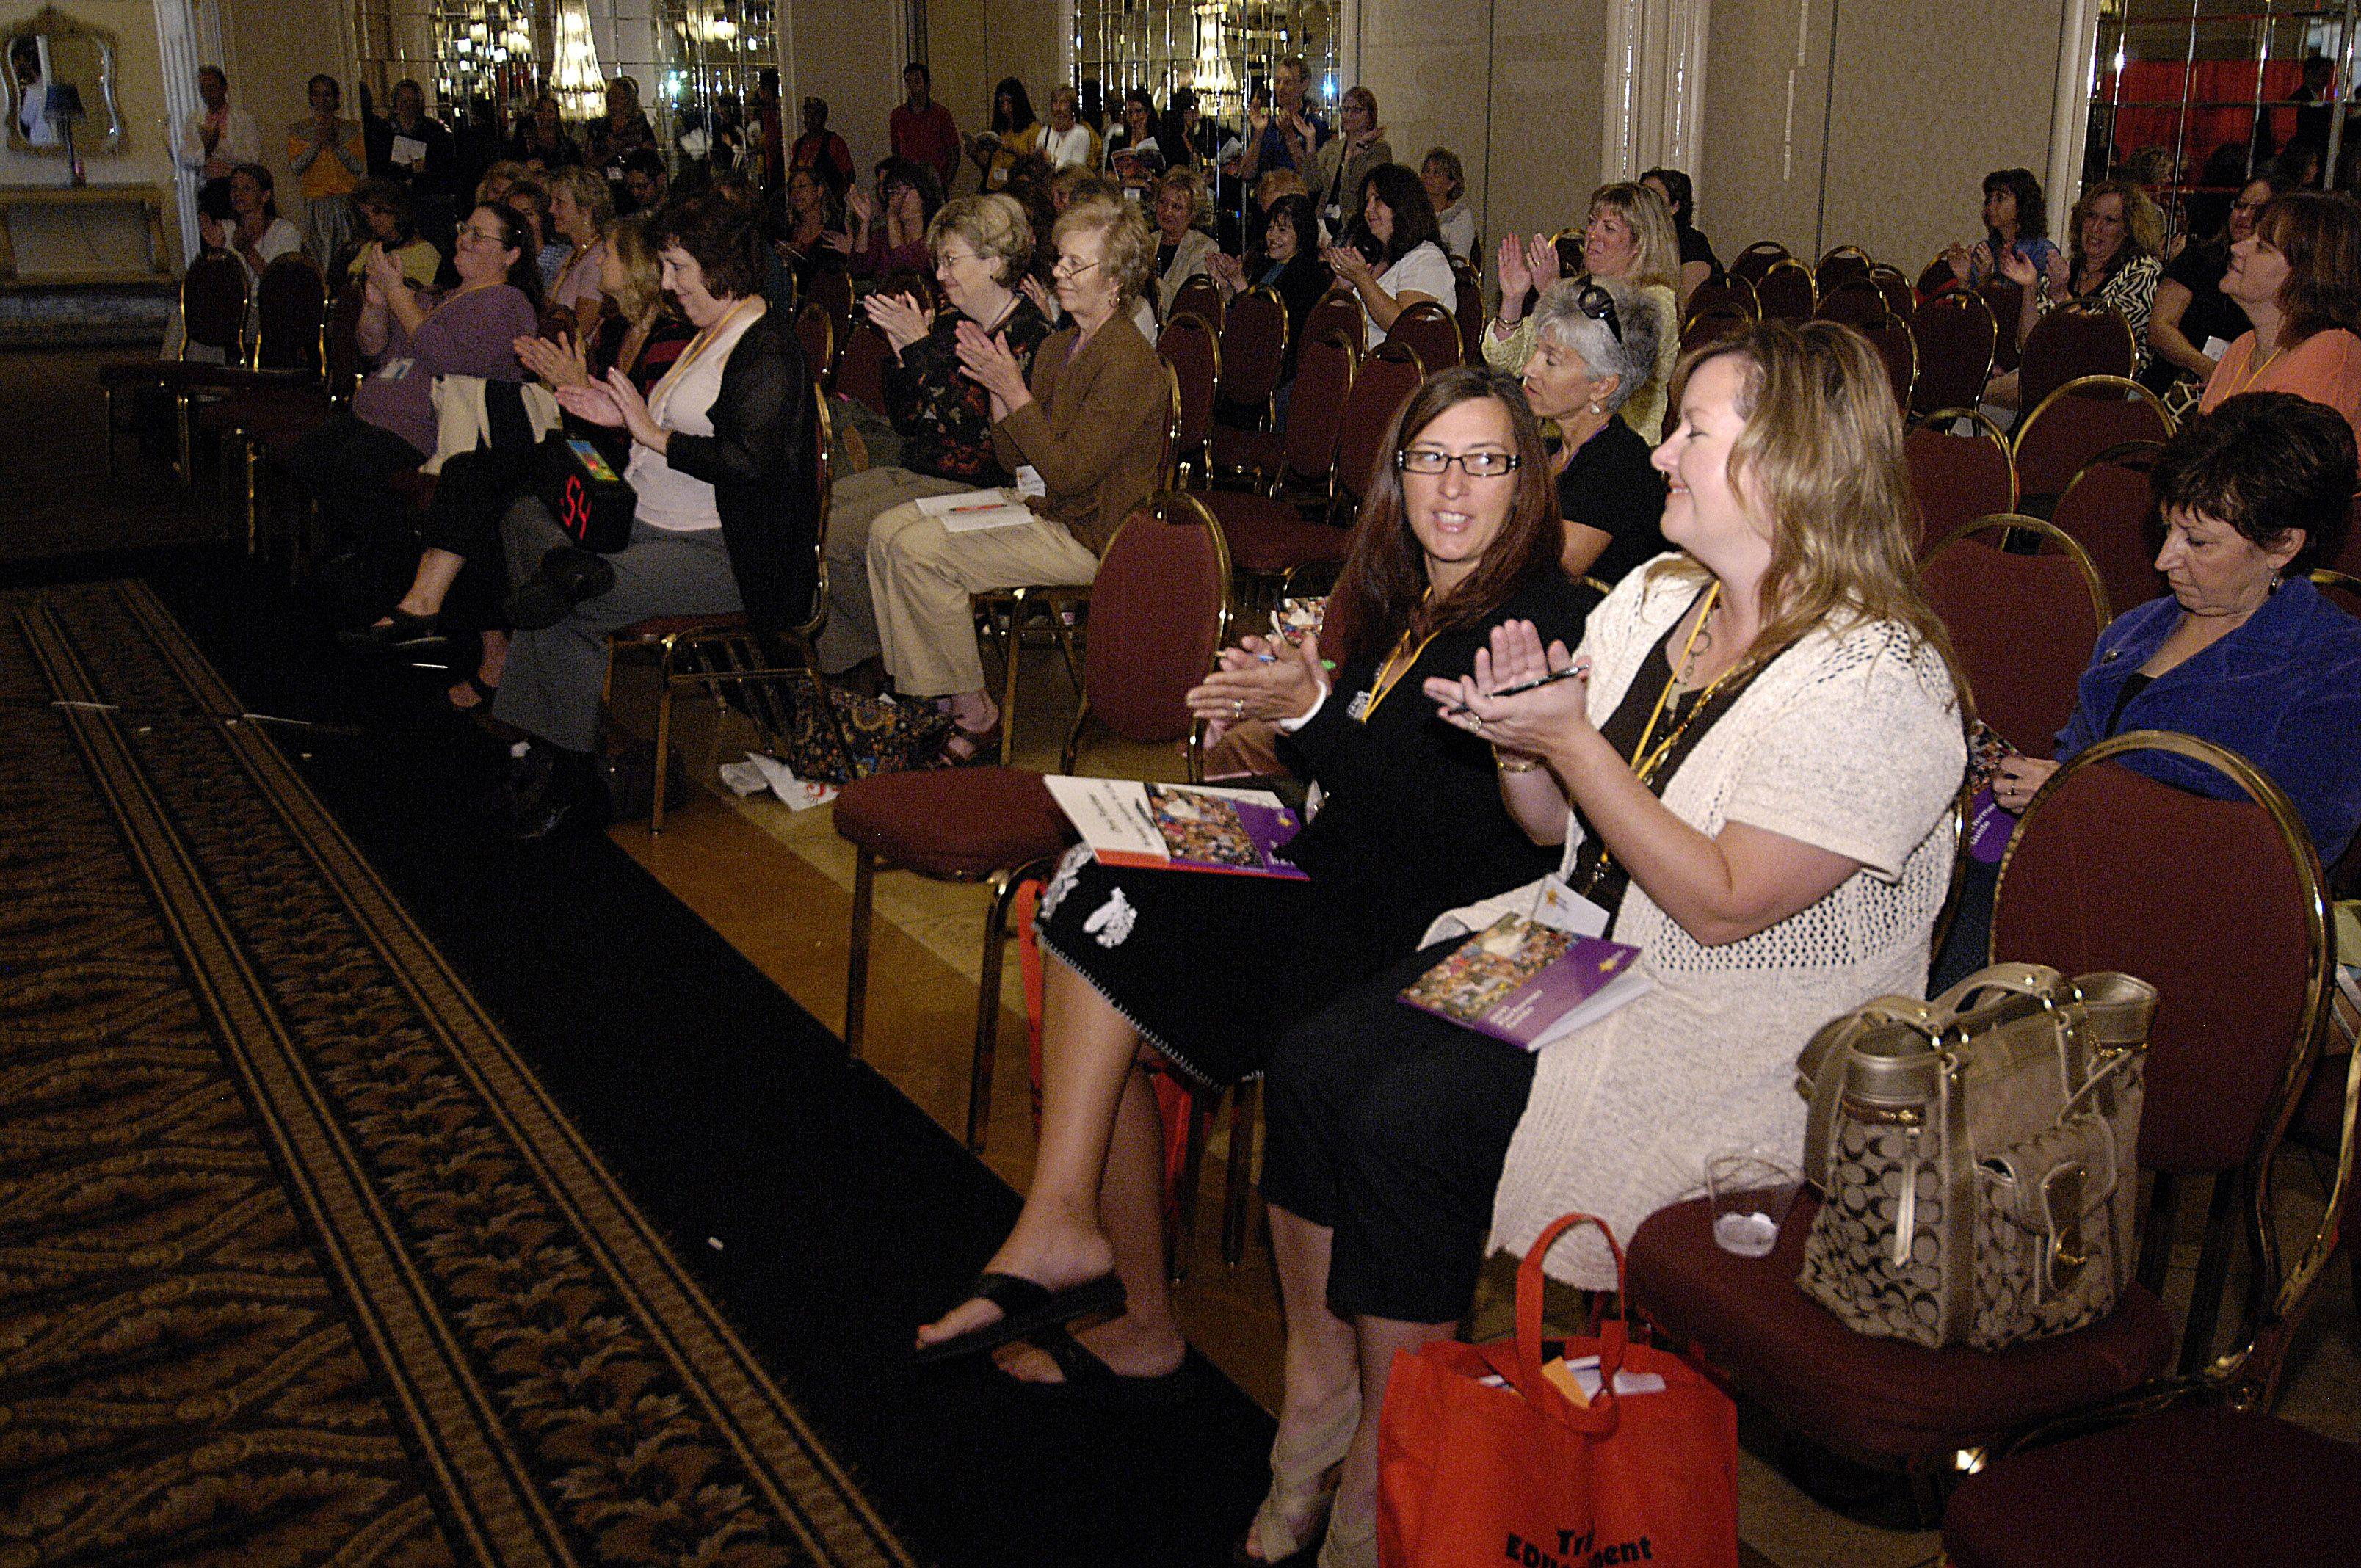 Teachers and parents watch educational performers display their talents Tuesday at the Premier Showcase in Lombard.